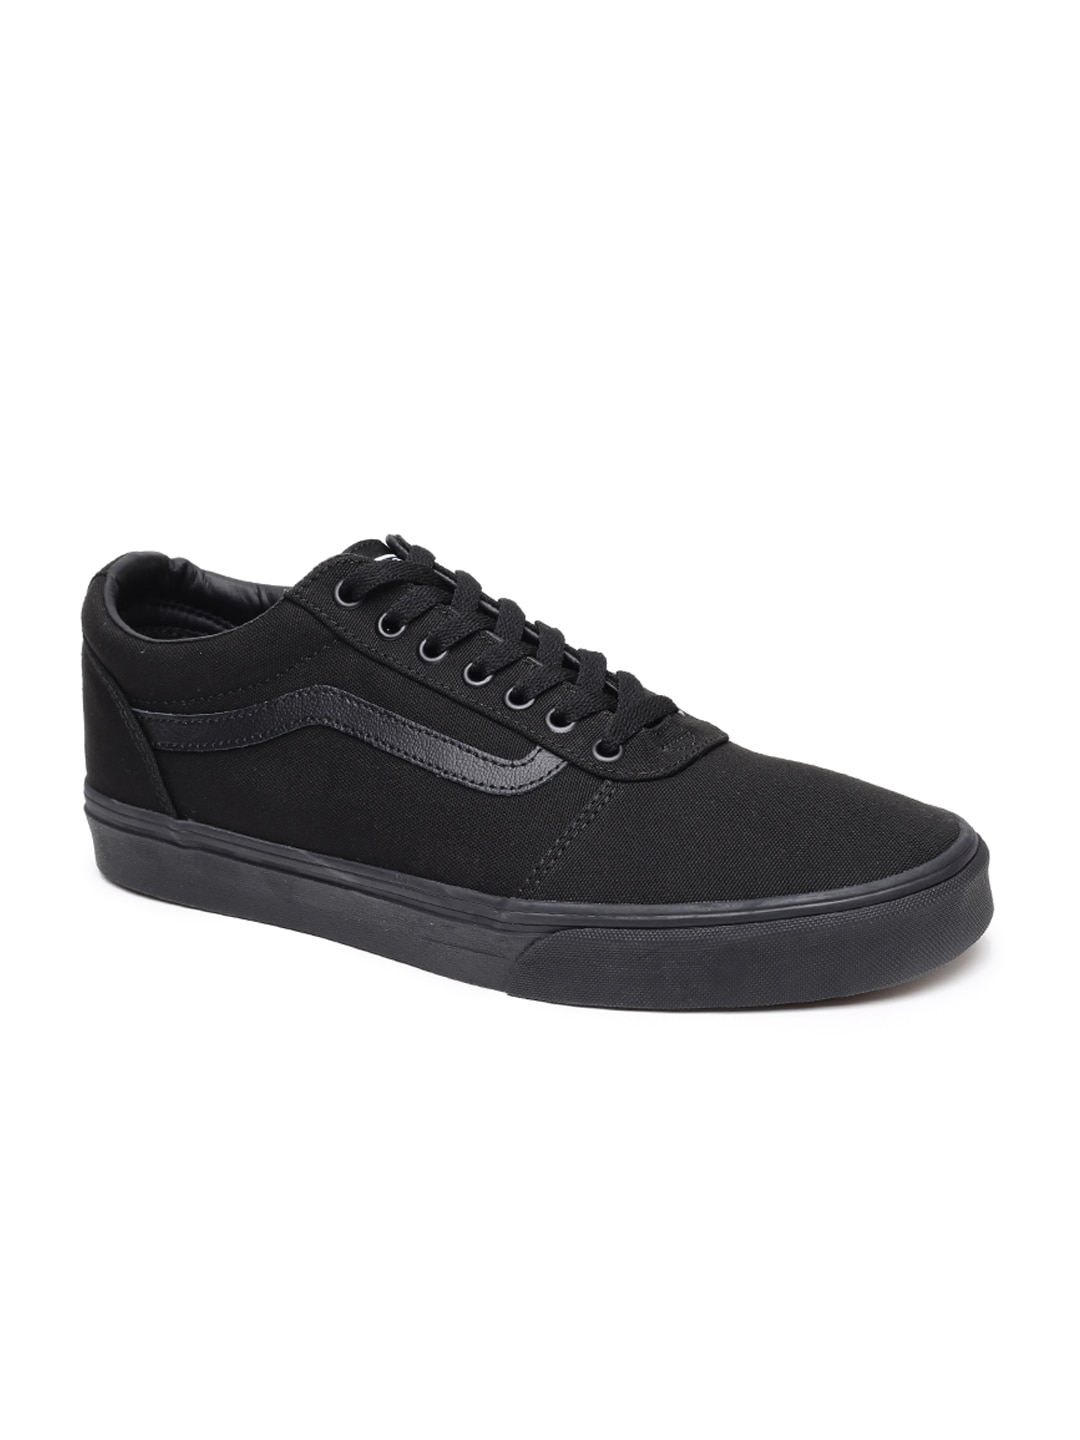 d112f0840d Vans Casual Shoes - Buy Vans Casual Shoes Online in India